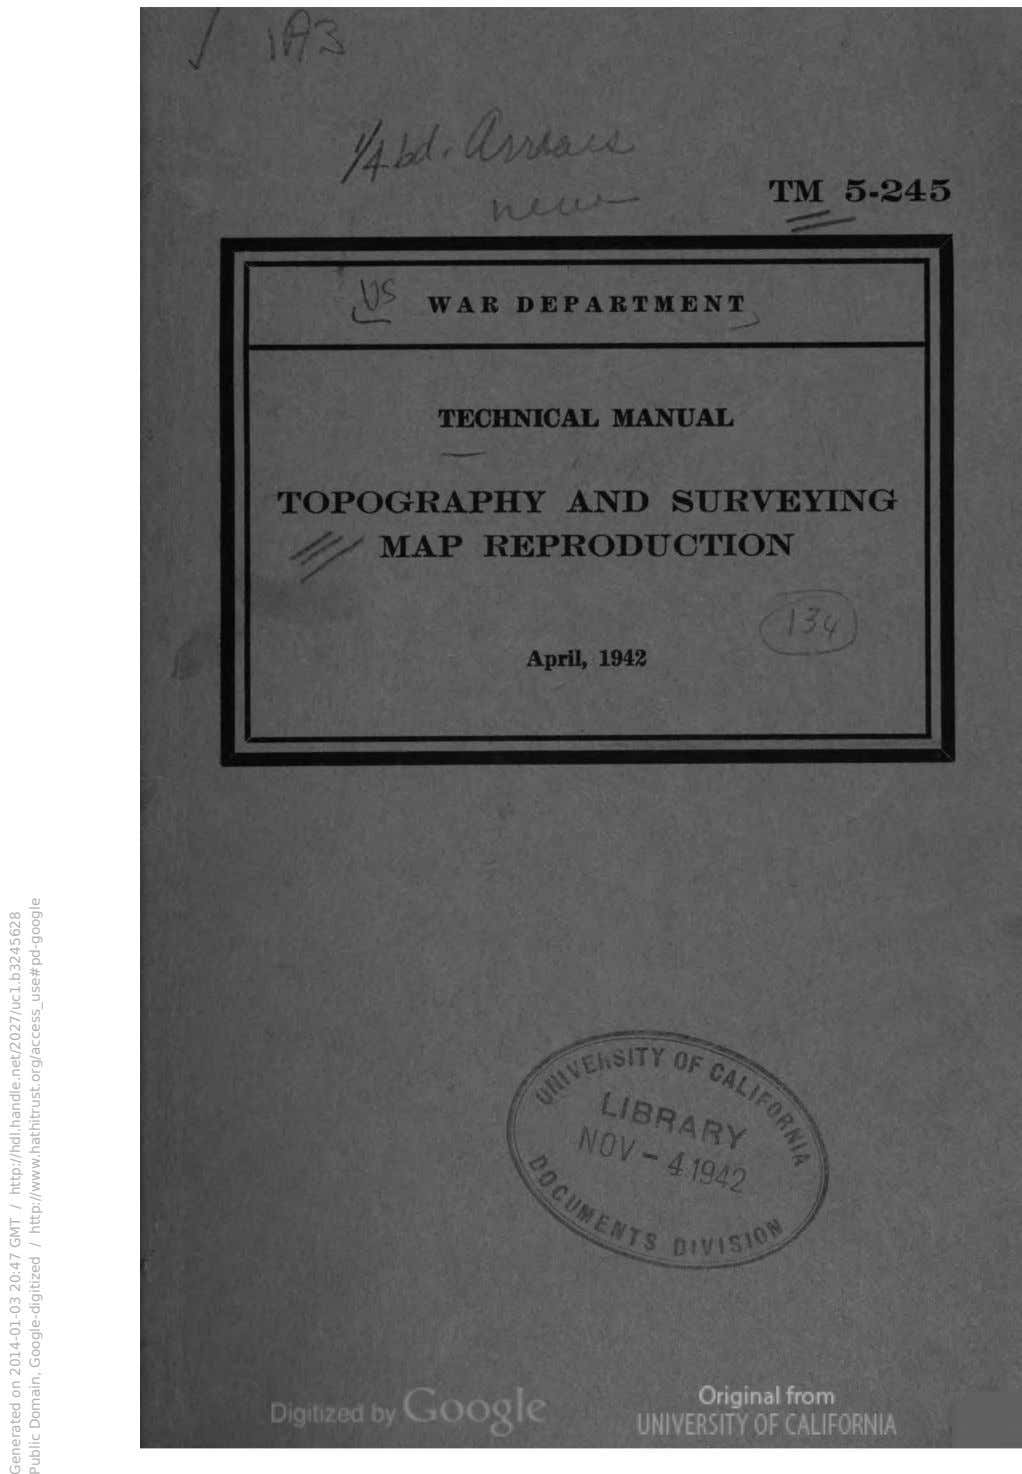 TM 5-245 WAR DEPARTMENT TECHNICAL MANUAL TOPOGRAPHY AND SURVEYING MAP REPRODUCTION April, 1942 Generated on 2014-01-03